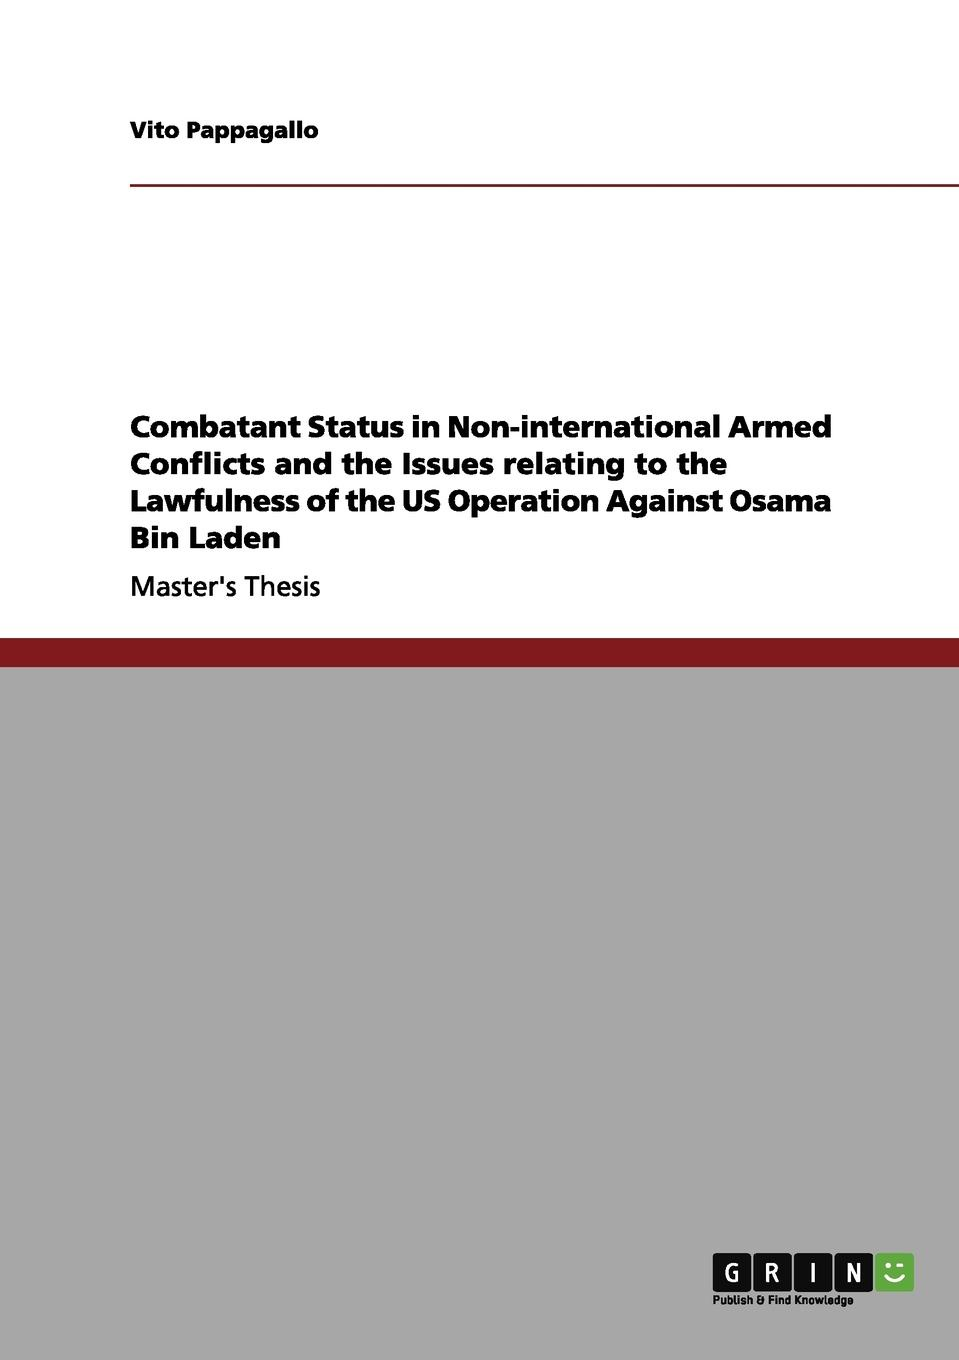 Vito Pappagallo Combatant Status in Non-international Armed Conflicts and the Issues relating to the Lawfulness of the US Operation Against Osama Bin Laden war photography images of armed conflict and its aftermath